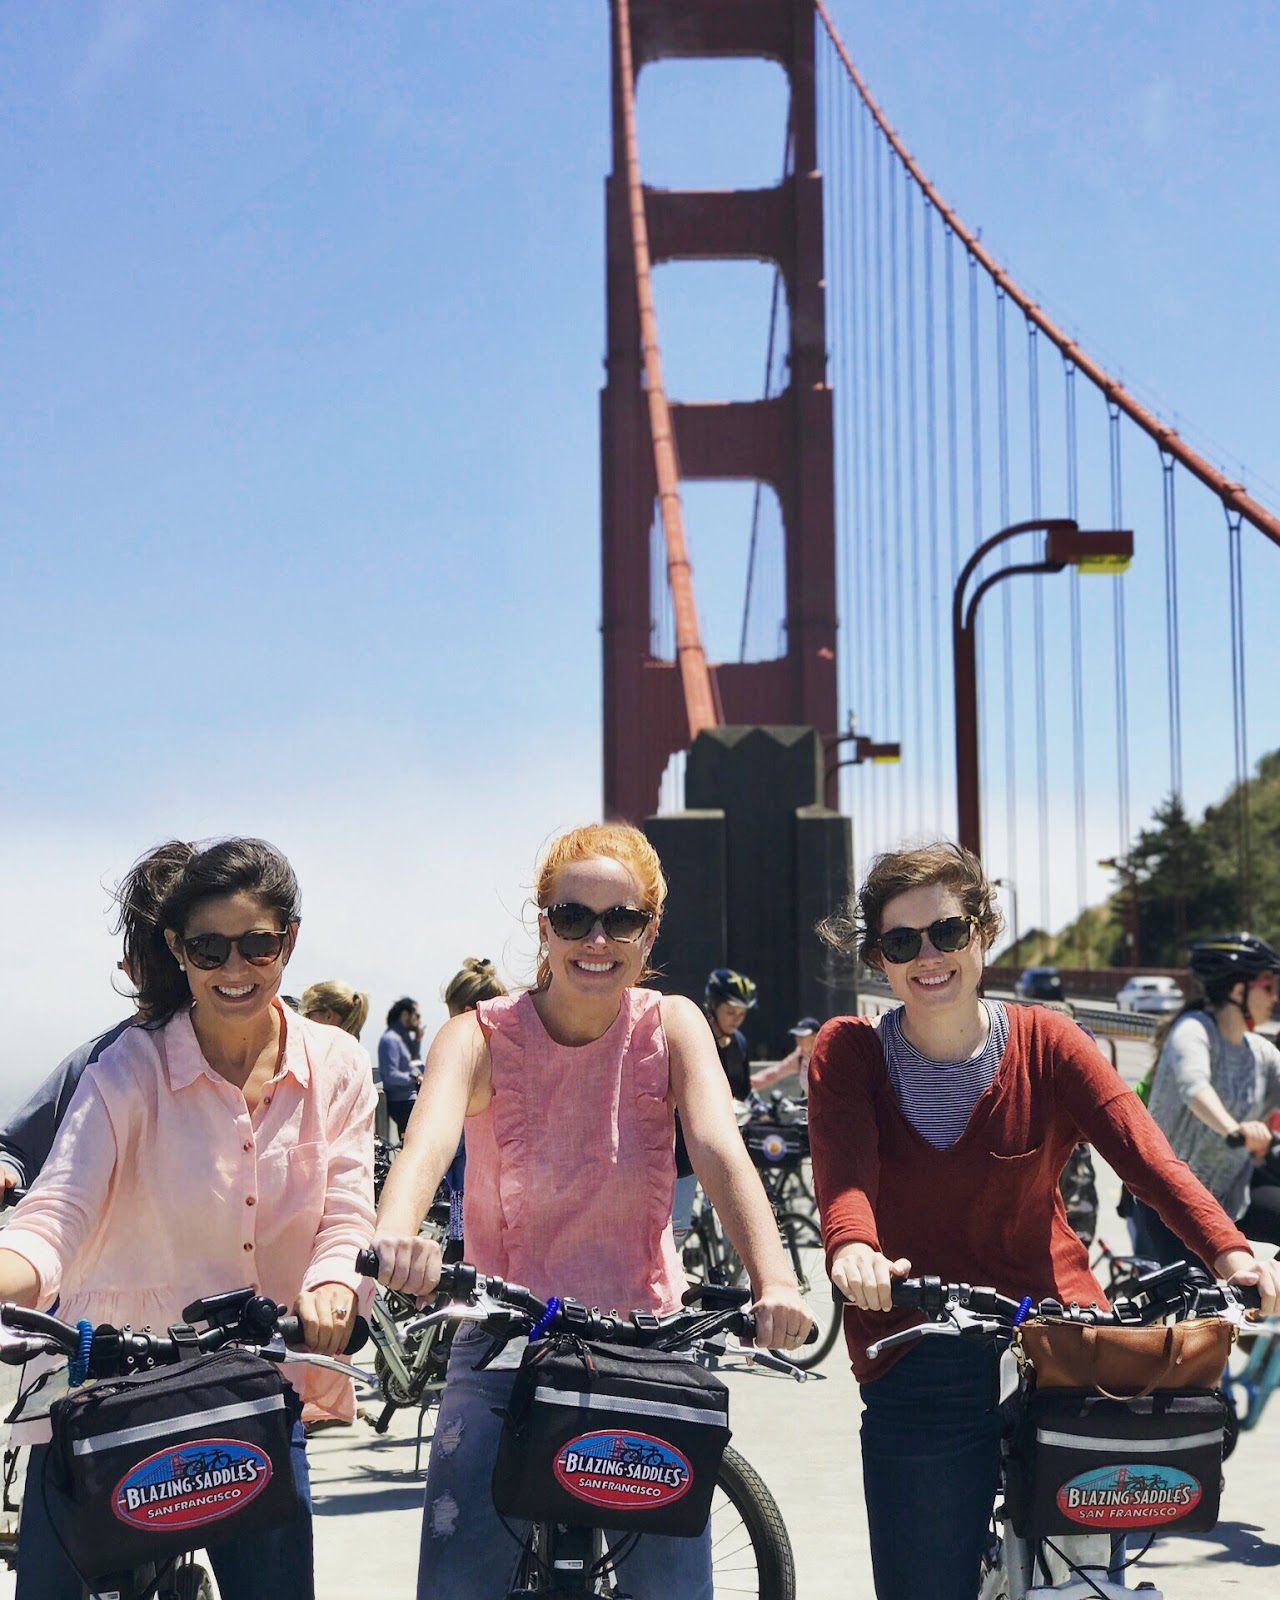 Our Road Trip down the Pacific Coast Highway: Part 1